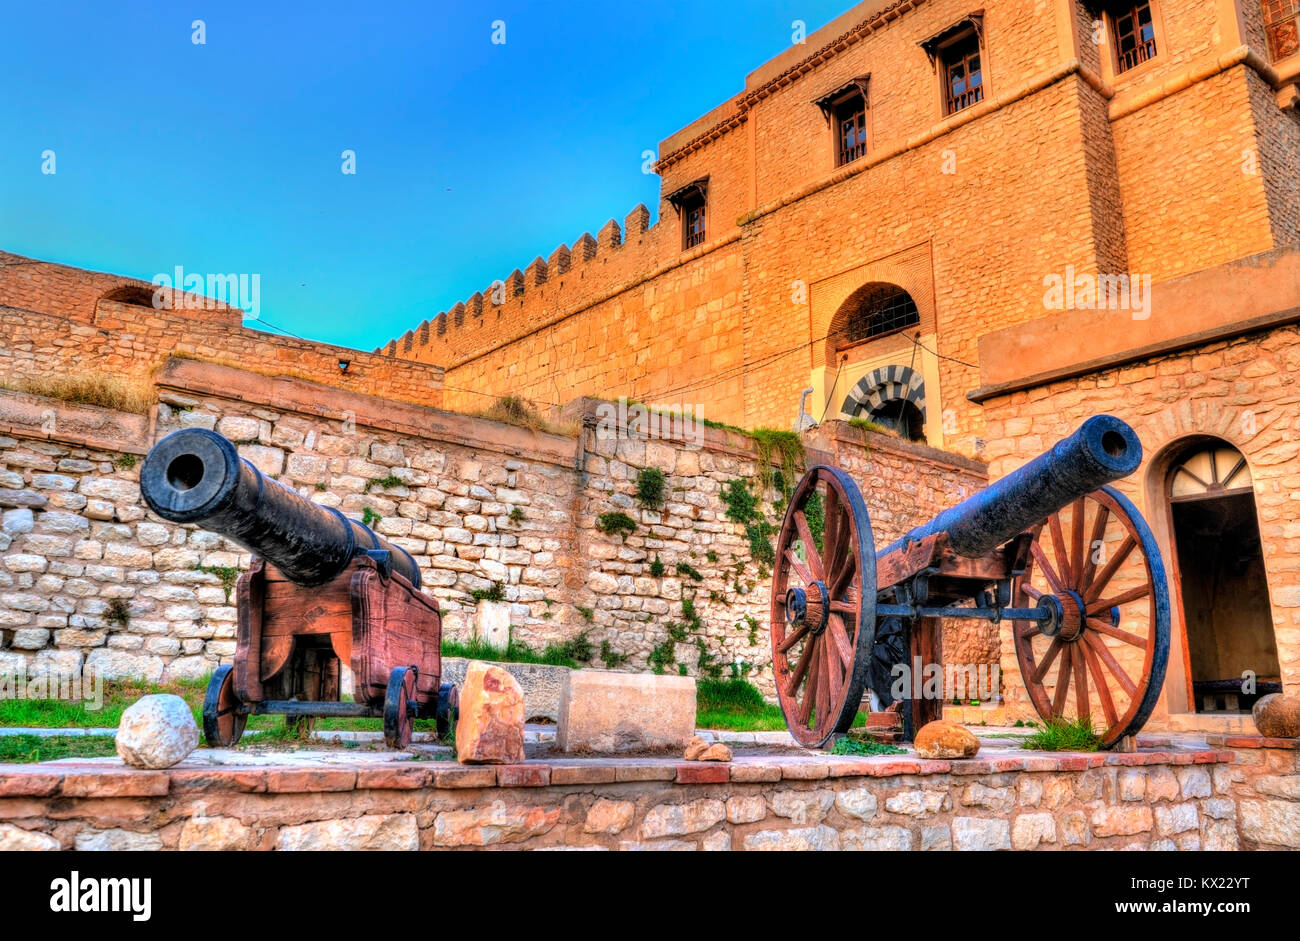 Cannons at the Kasbah, a medieval fortress in le Kef, Tunisia - Stock Image